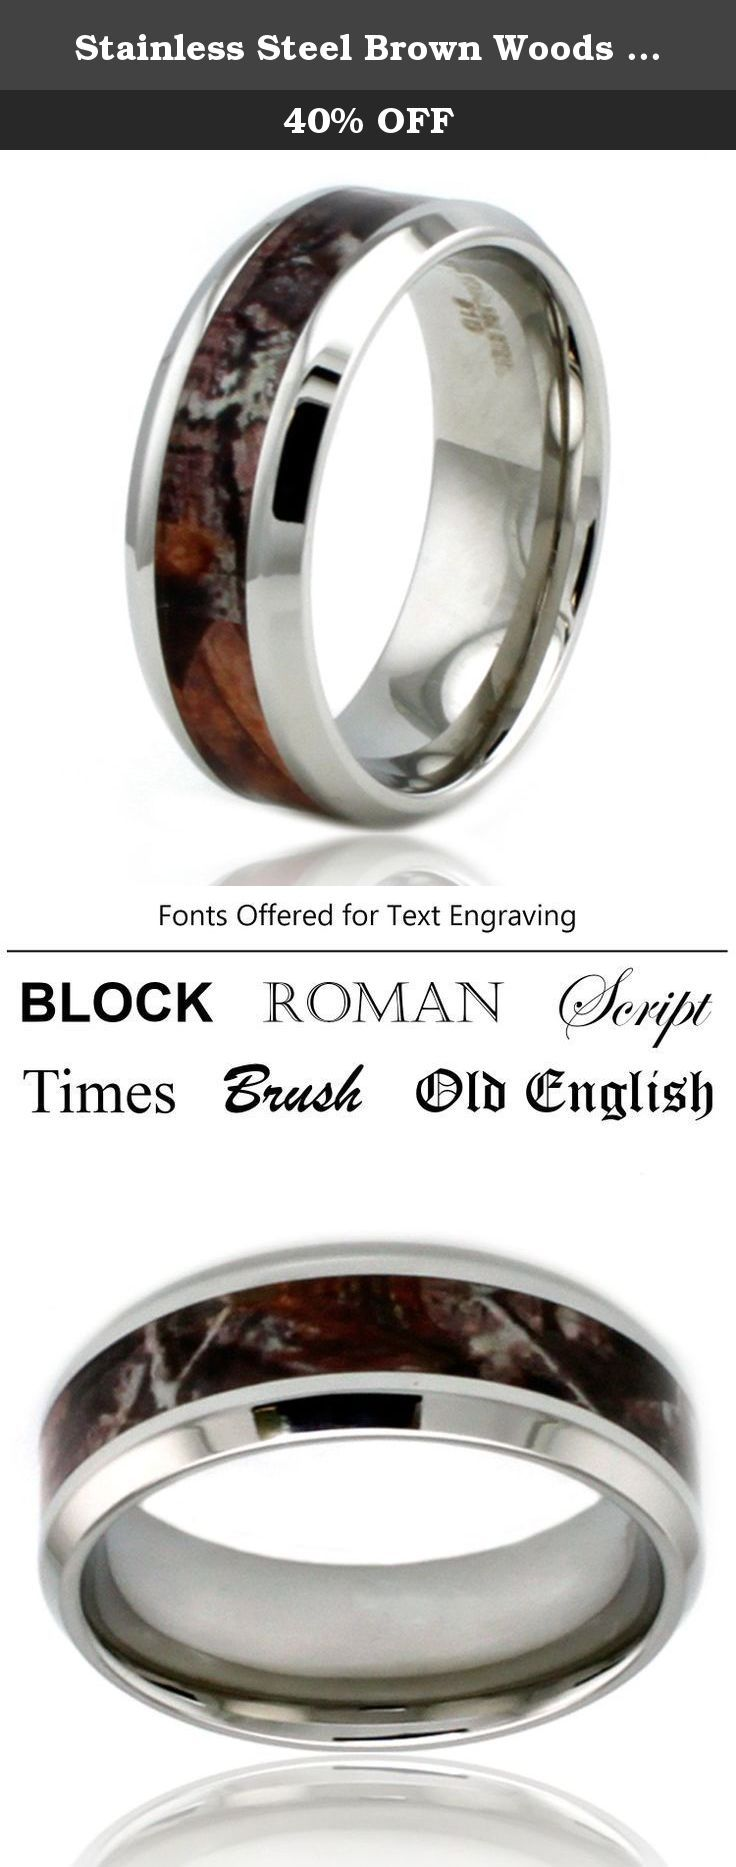 Stainless Steel Brown Woods Camouflage Beveled Edge Ring w/ Personalized Engraving, Size 13.5. Surgical grade stainless steel polished to perfection, with brown Real Tree camouflage pattern inlay. A beautiful and elegant solution for your wedding band needs. HOW TO ENGRAVE: (1) Contact us after order is placed and let us know the message along with font and placement preference. (2) If we do not receive any contact from you within 3 days, we will ship the order without engraving. (3)...